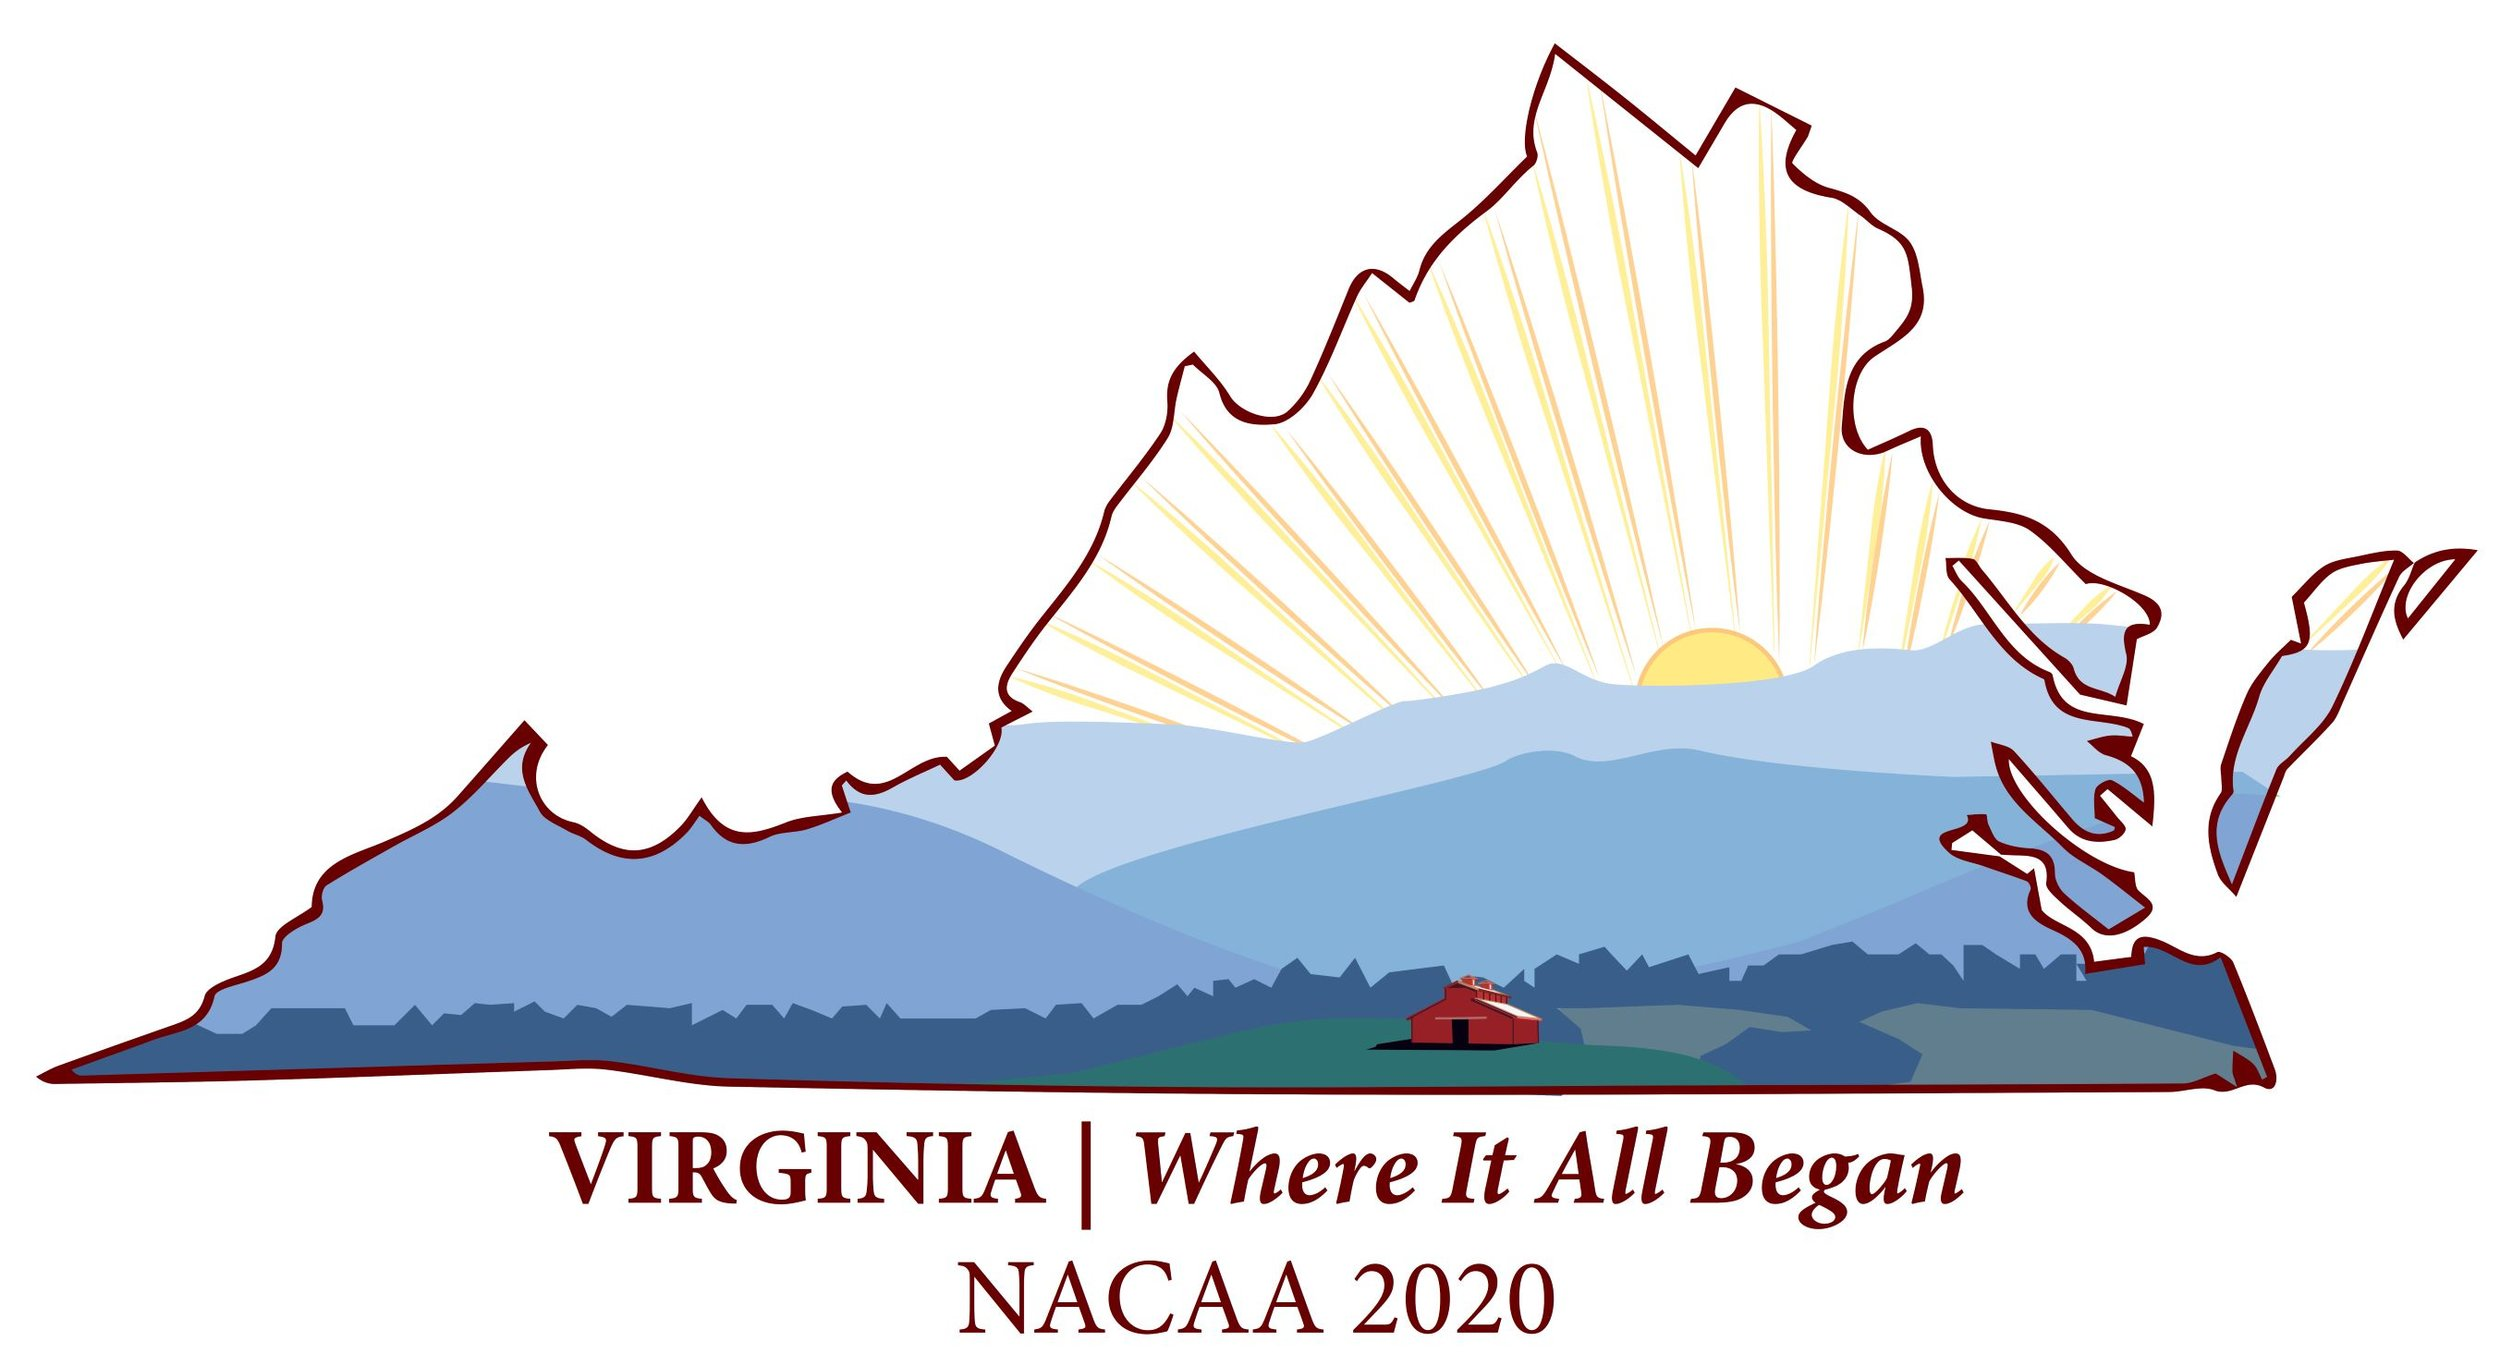 Follow on Facebook   For more information, contact:  Theresa Long Pittman, Co-Chair 2020 VA AM/PIC, P.O. Box 60, Accomac, VA 23301-0060; tpittman@vt.edu or (757) 787-1361 ext. 14  Andy Overbay, Co-Chair 2020 VA AM/PIC, 121 Bagley Cir. Suite 434, Marion, VA 24354, aoverbay@vt.edu or (276) 783-5175